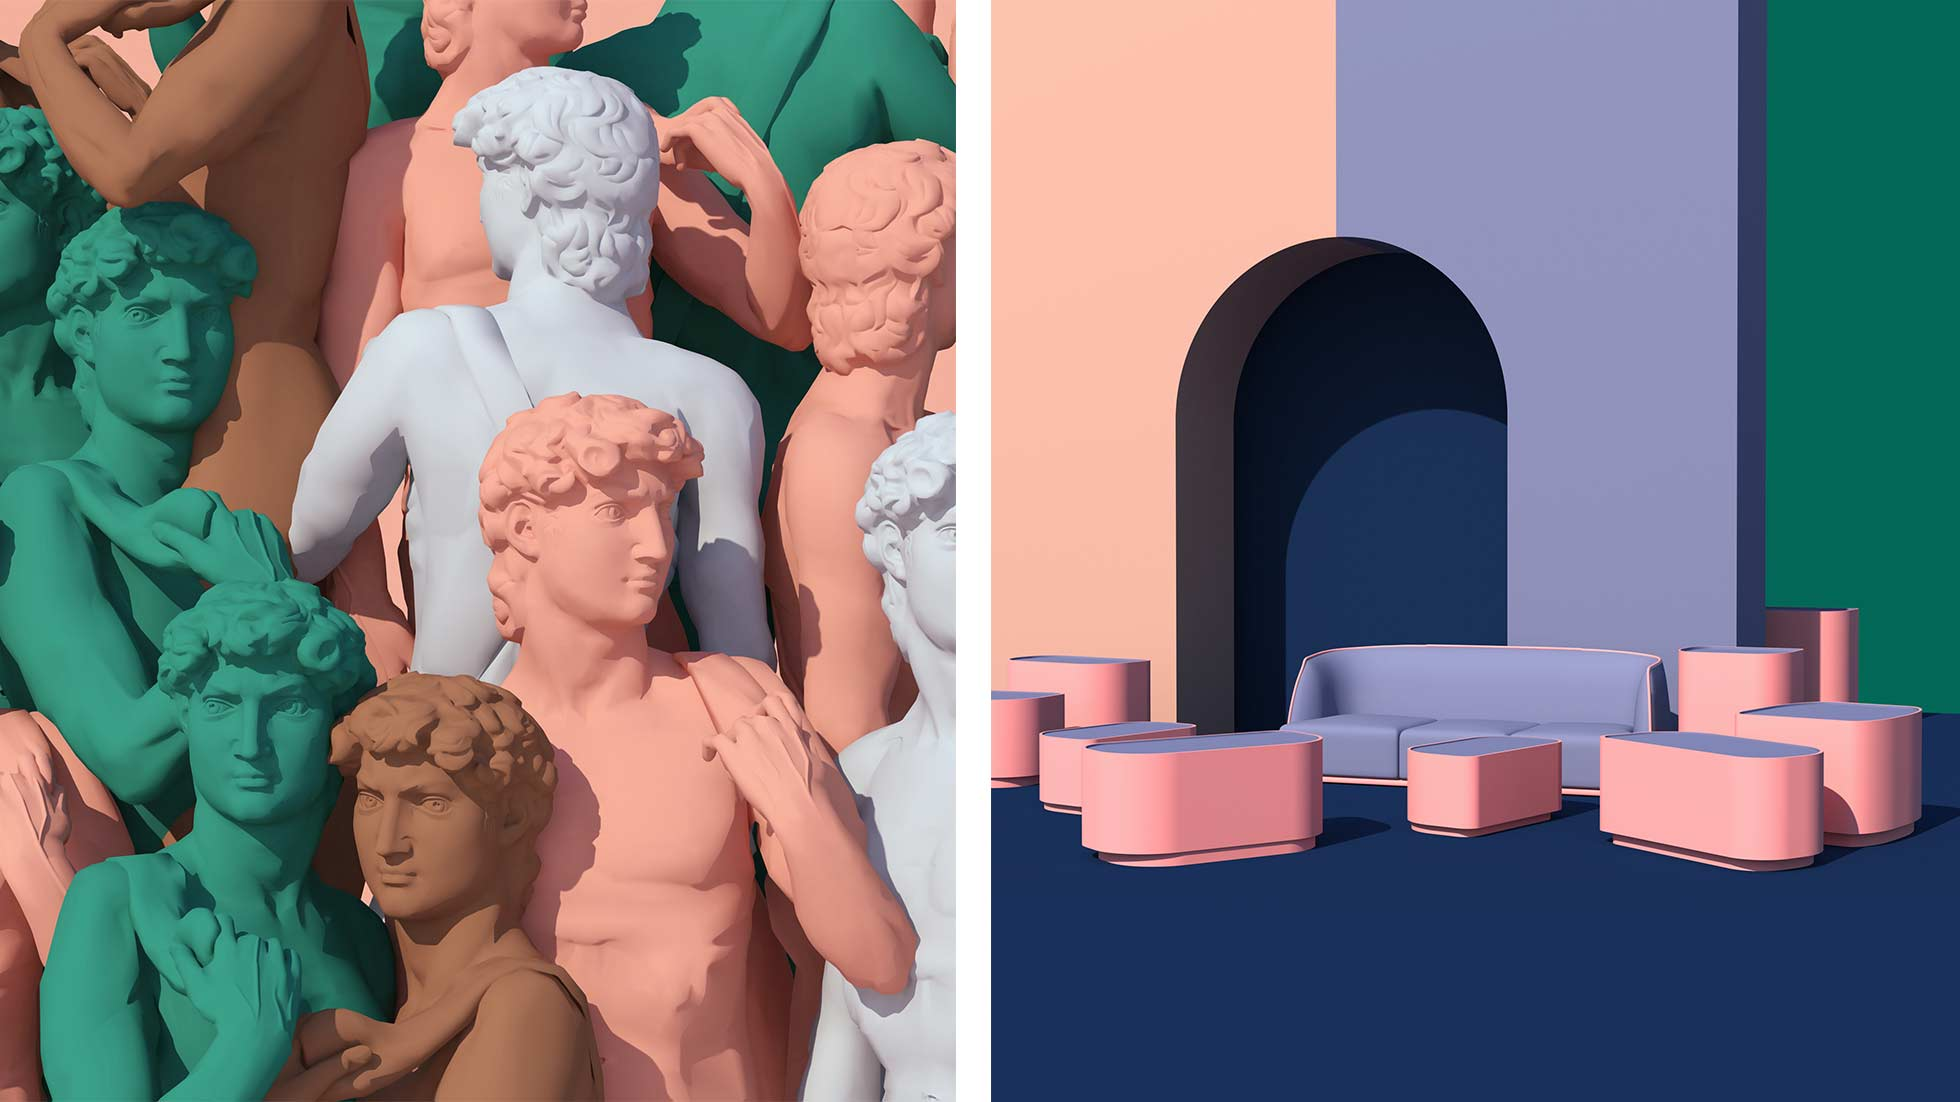 Blending surrealism with classical sculpture